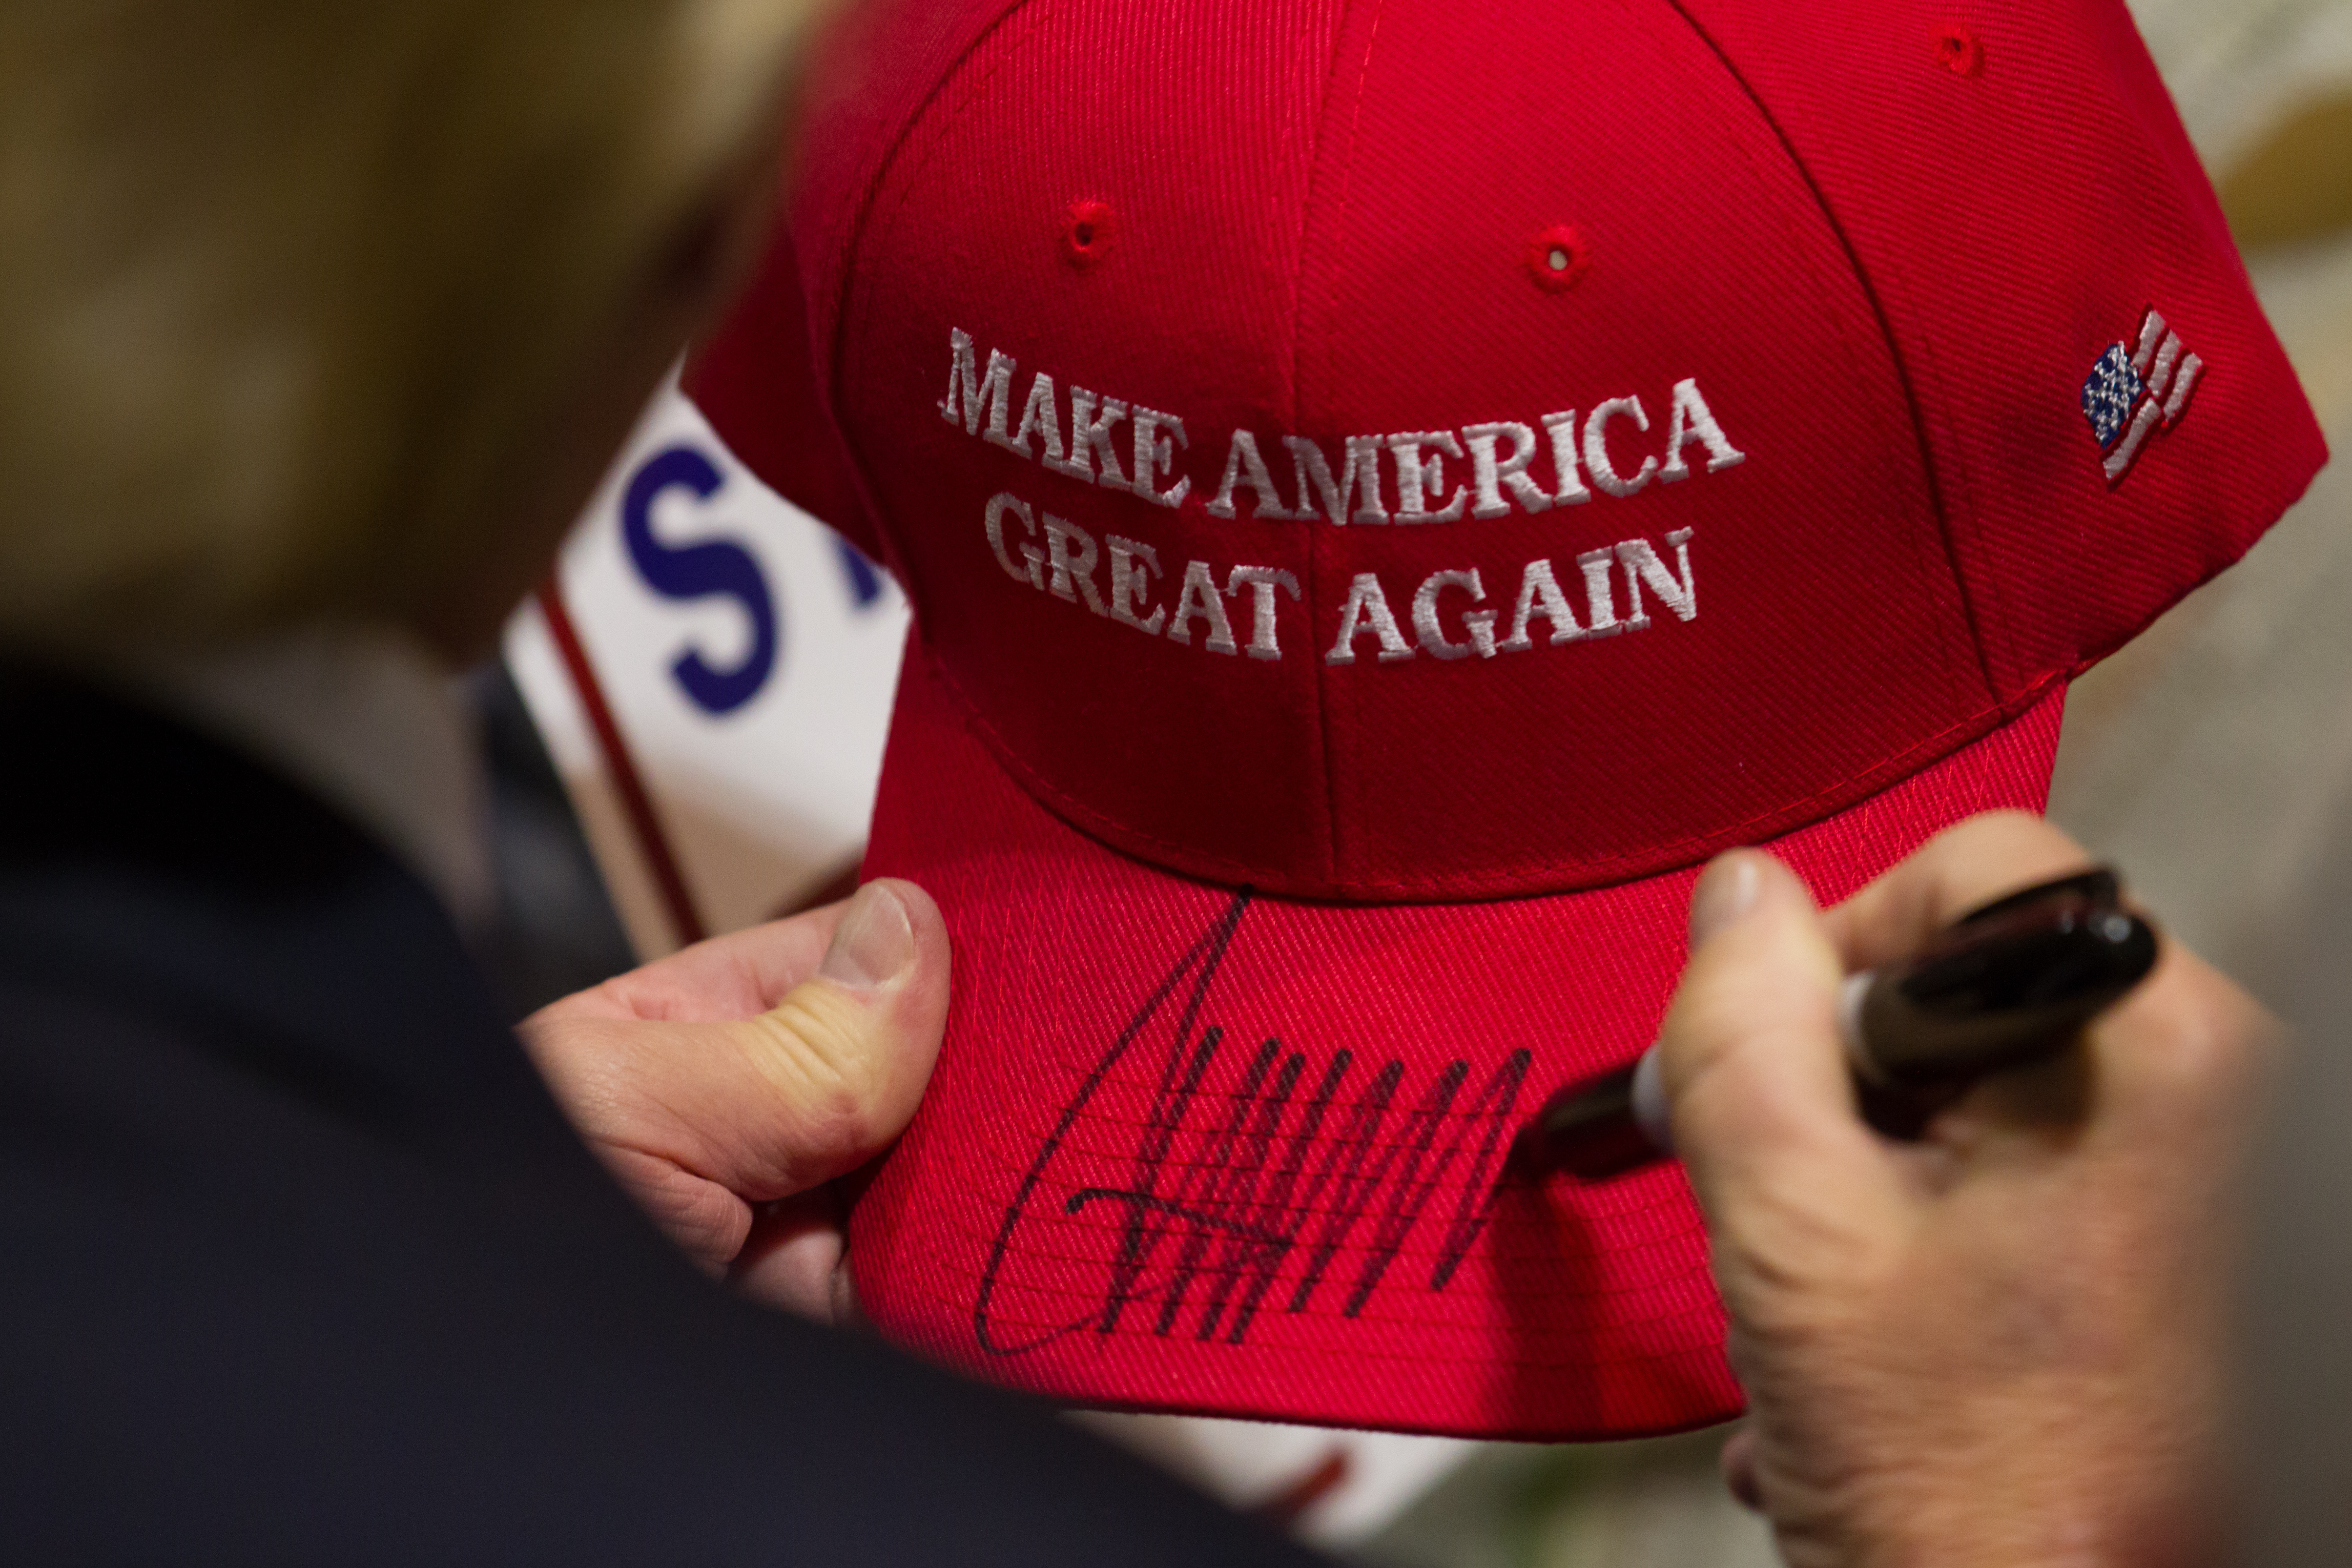 HARTFORD, CT - APRIL 15: Republican presidential candidate Donald Trump signs a hat after speaking at a rally at the Connecticut Convention Center on April 15, 2016 in Hartford, Connecticut. The 2016 Connecticut Republican Primary is scheduled for April 26, 2016. (Photo by Matthew Cavanaugh/Getty Images)